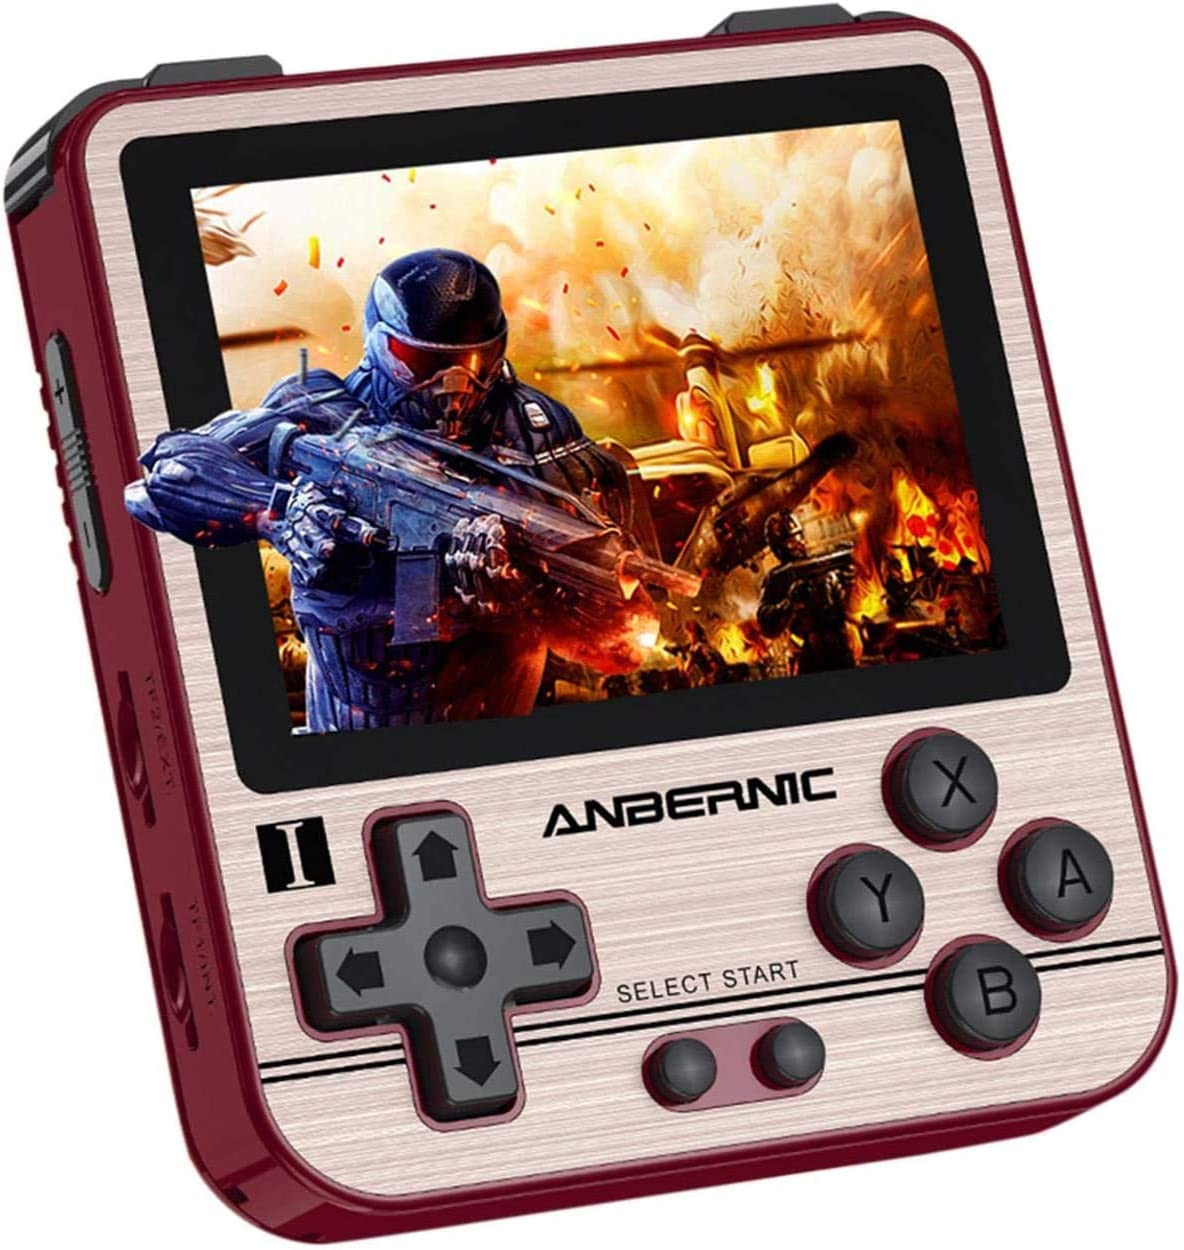 MJKJ RG280V Handheld Game Console , Retro Game Console Free with 64G TF Card 5000 Classic Games , 2.8 Inch IPS Screen Portable Video Game Console -Golden